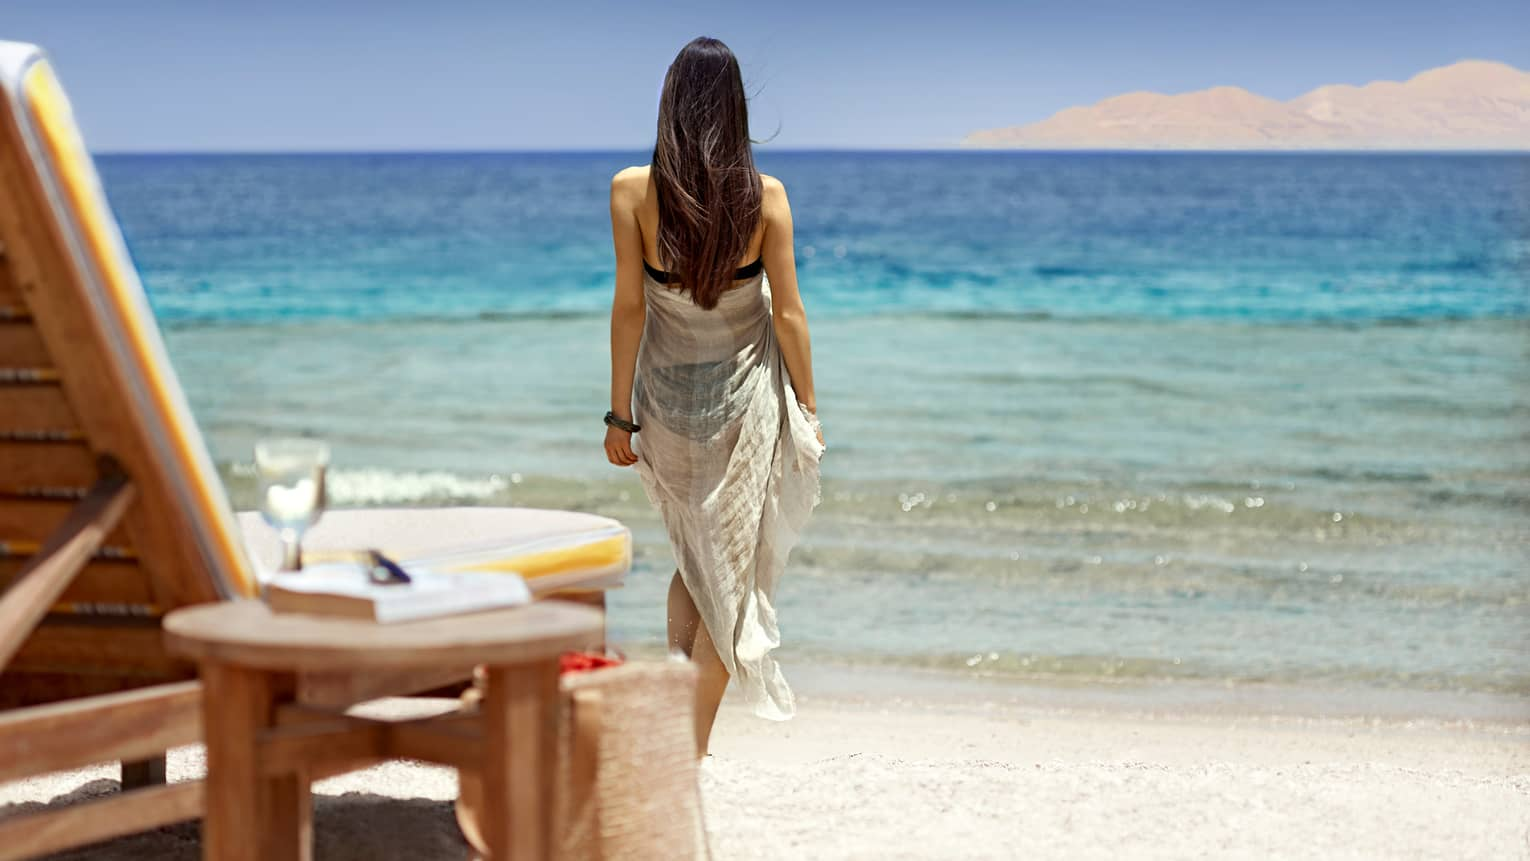 Woman wearing white flowing dress walks away from chair on beach toward sea